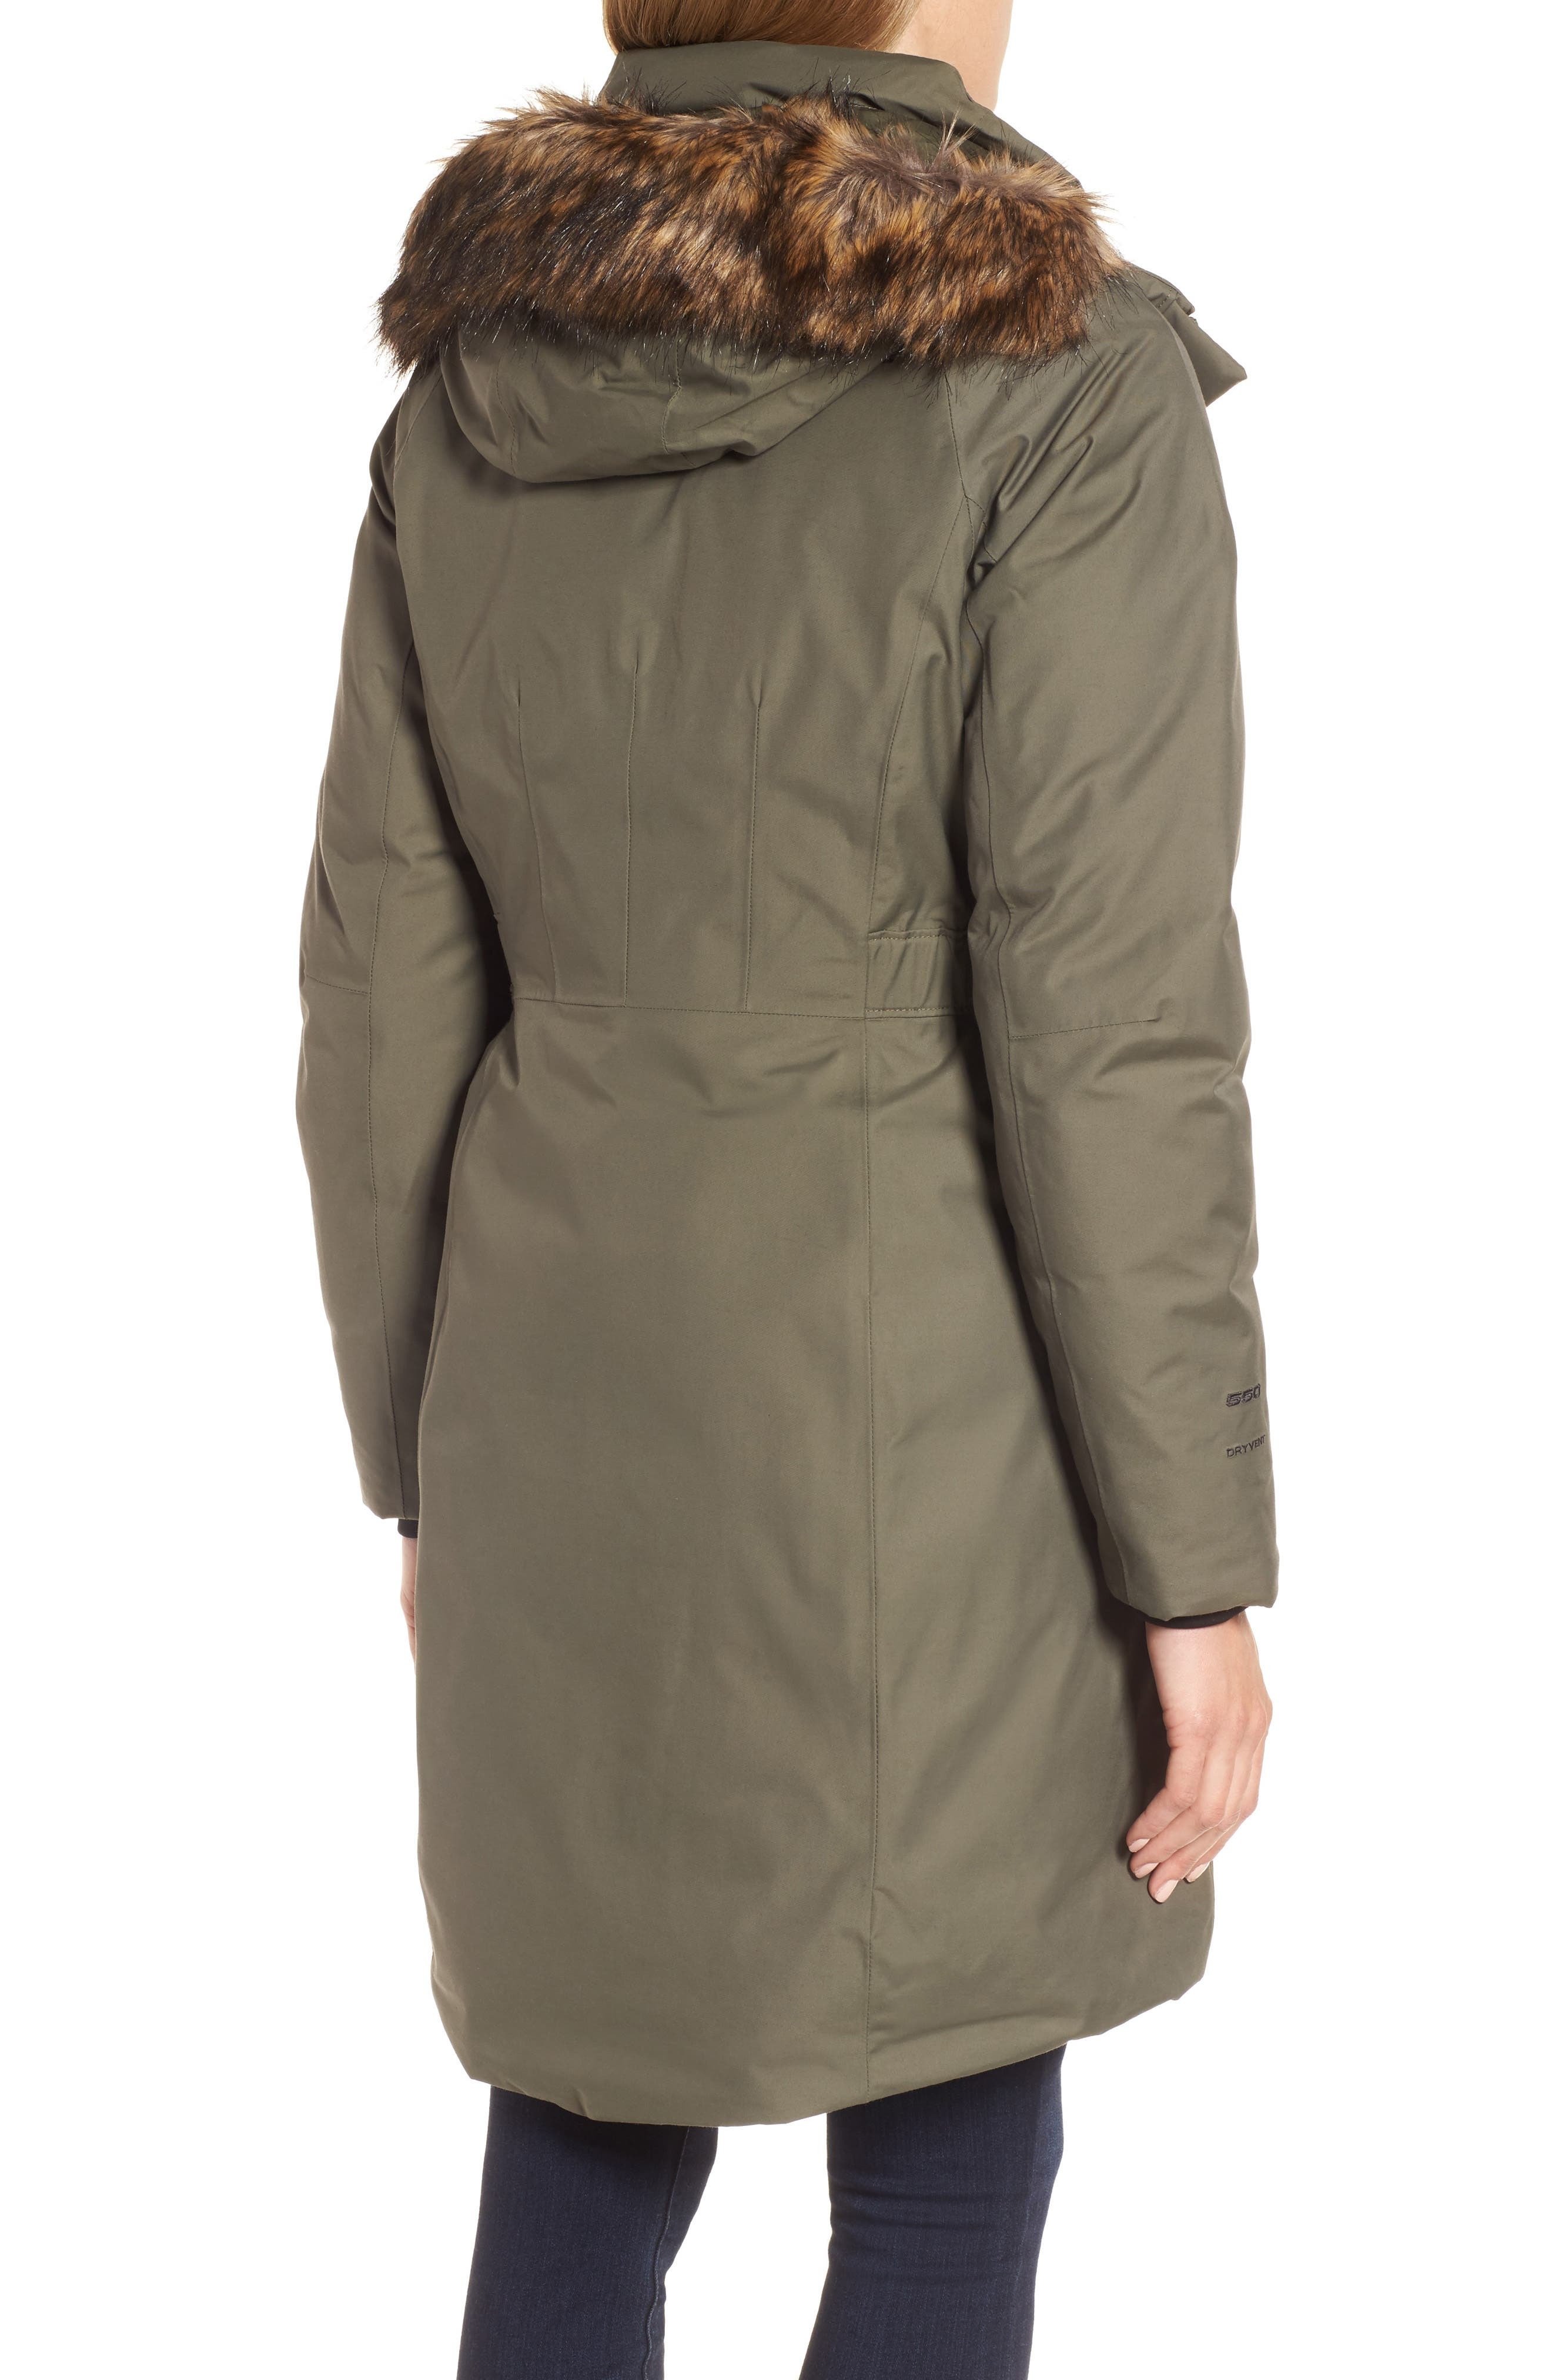 Arctic II Waterproof 550-Fill-Power Down Parka with Faux Fur Trim,                             Alternate thumbnail 2, color,                             New Taupe Green